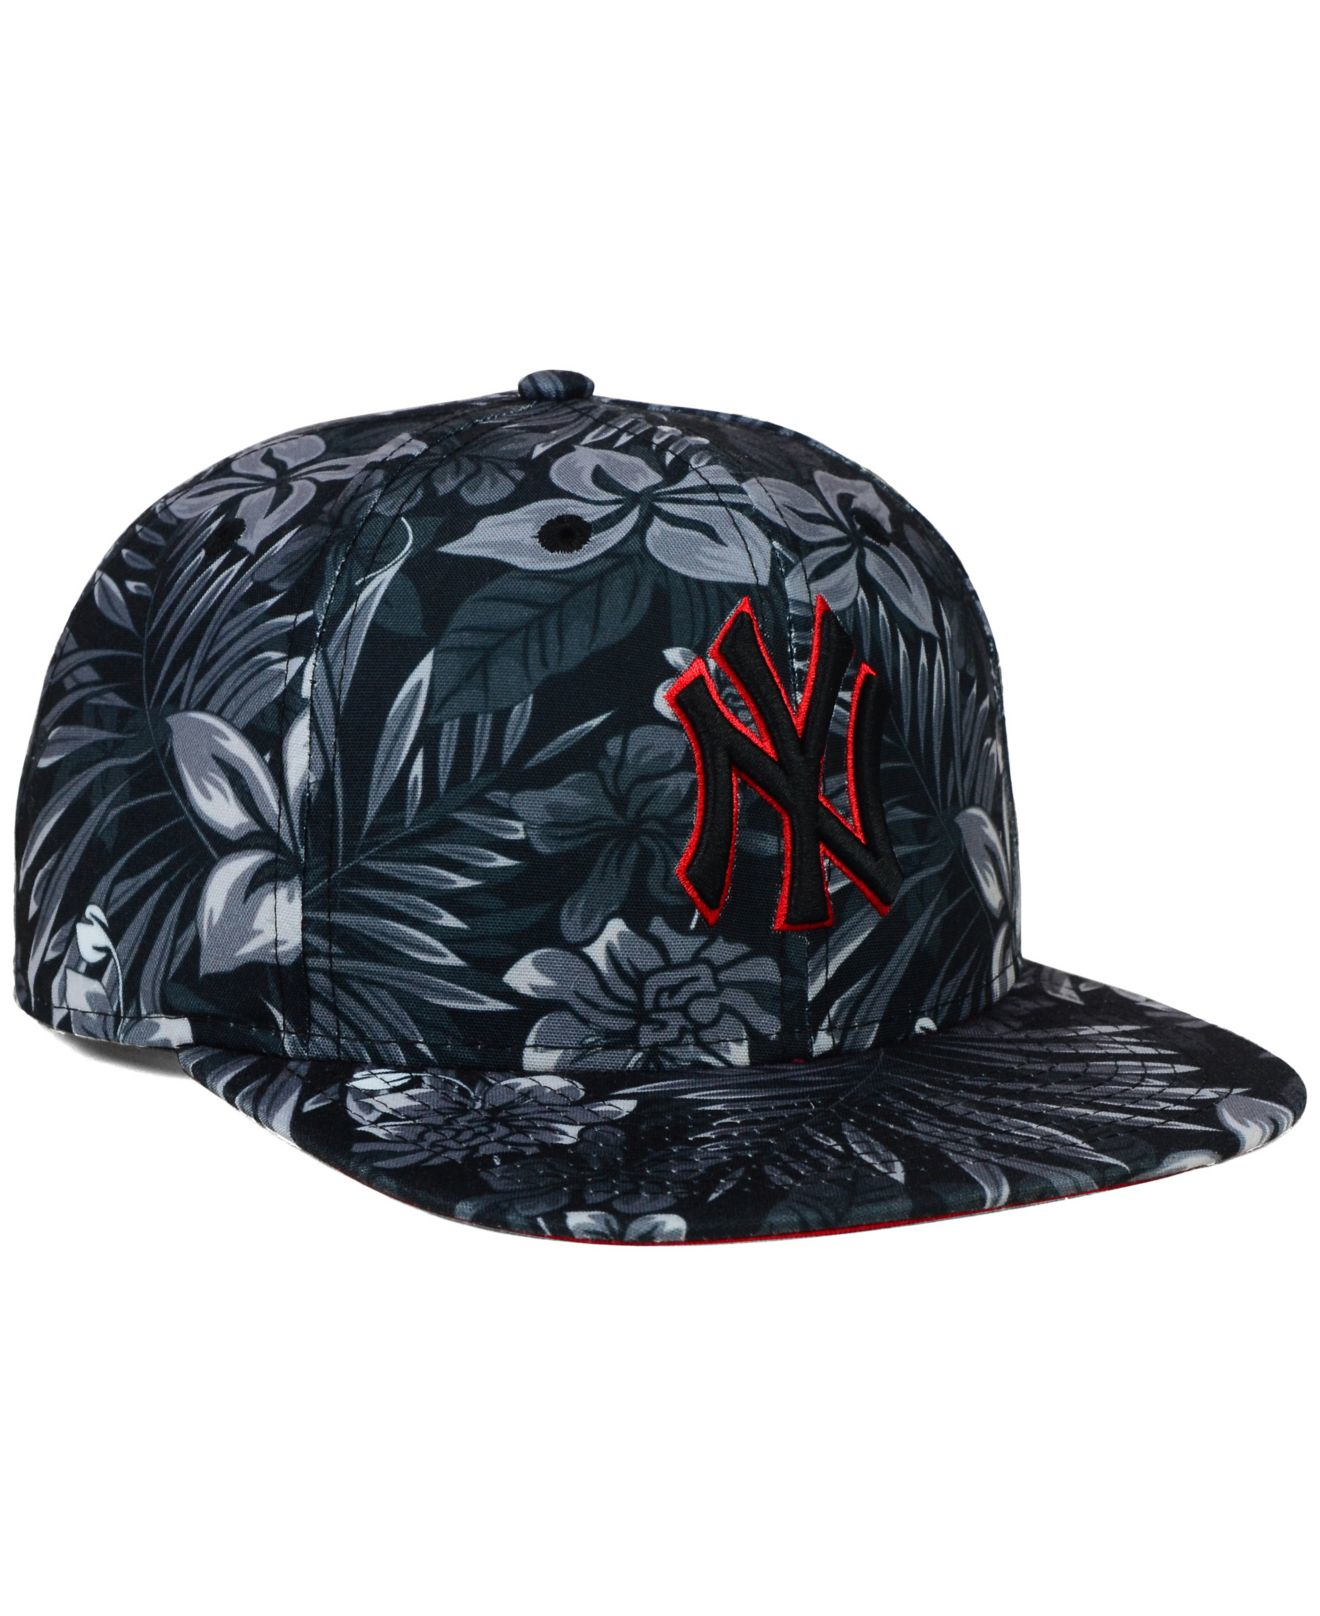 3dbe002aa84 ... coupon code for reduced new york yankees cap night number a2b1f fe2d2  ebf9c 22657